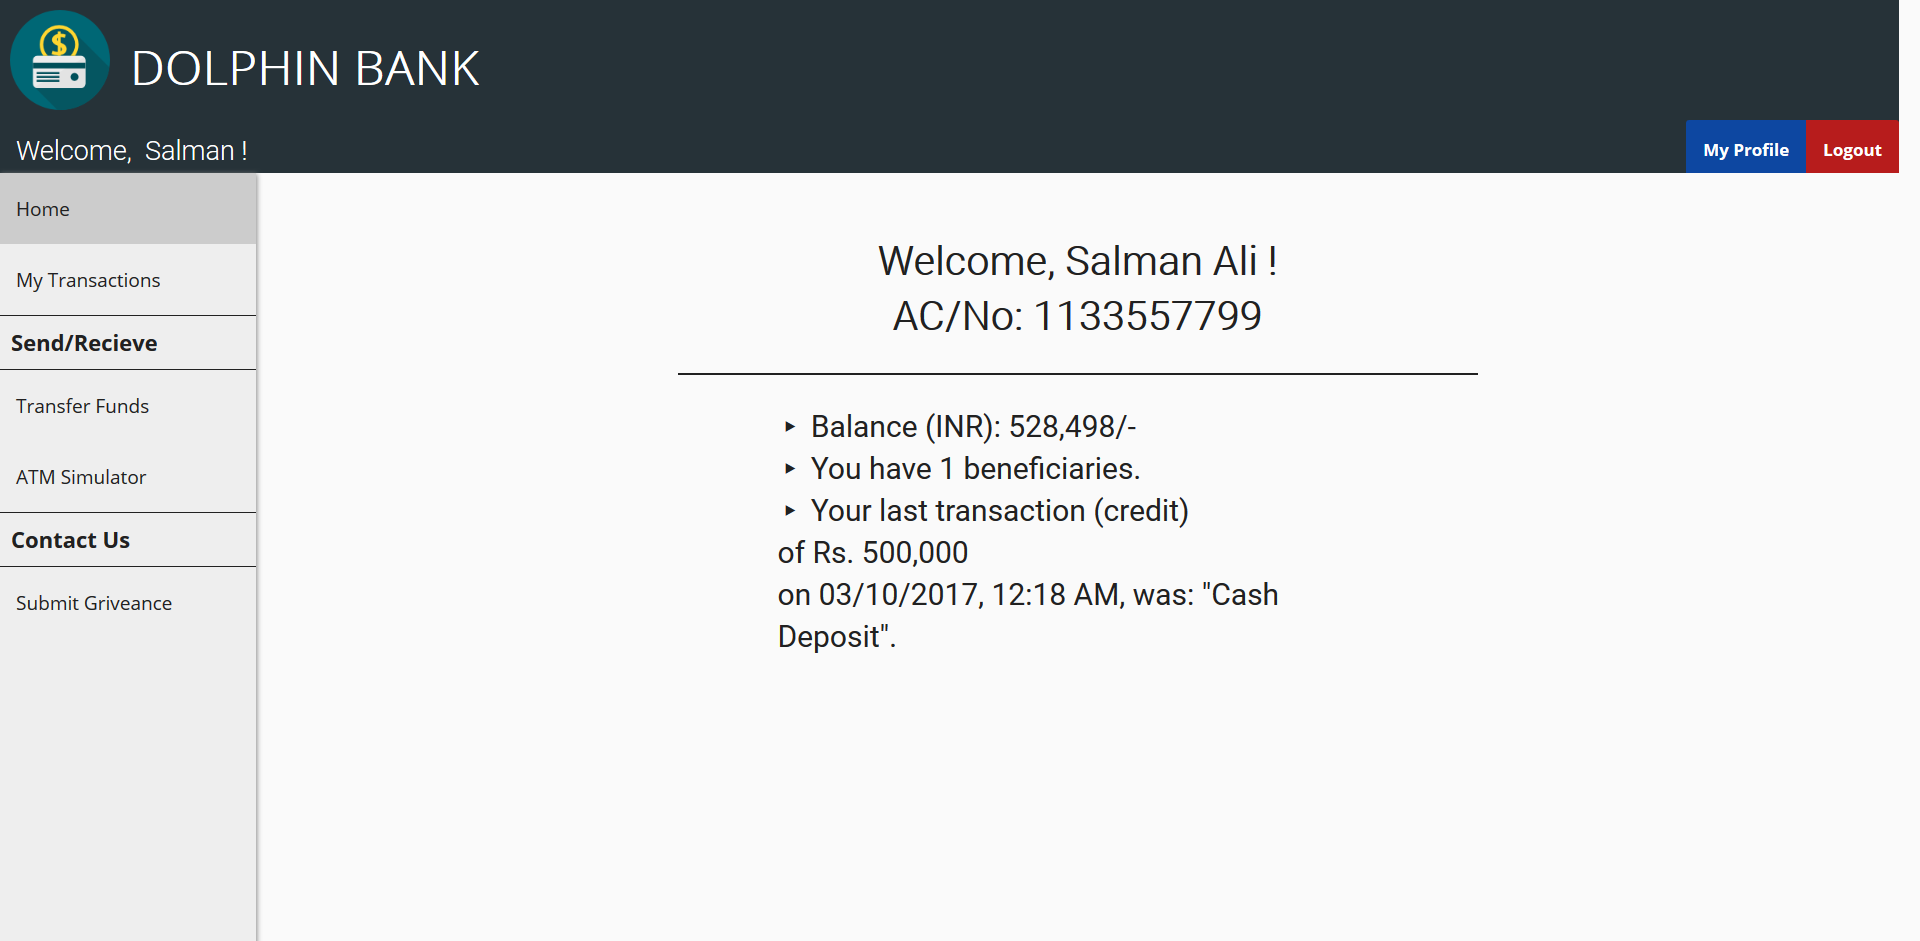 GitHub - zakee94/online-banking-system: Online banking system in PHP